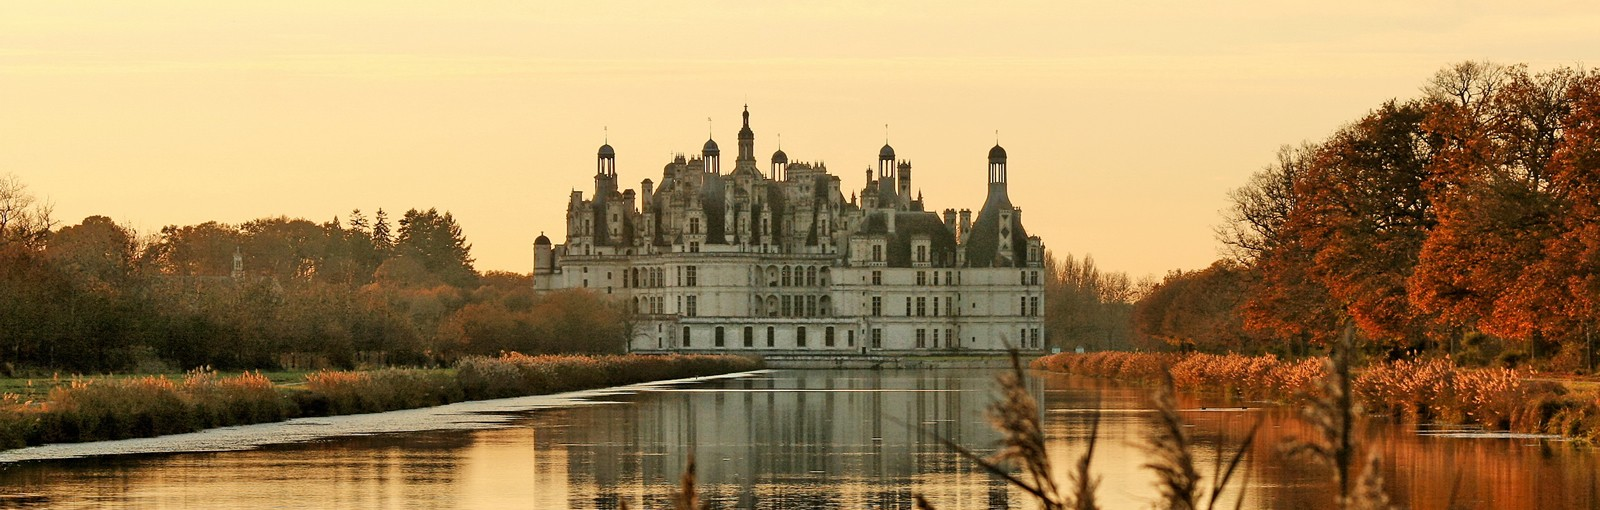 Tours CHAMBORD, CHENONCEAU AND CHEVERNY OR CHAUMONT OR BLOIS - Full days - Day tours from Paris